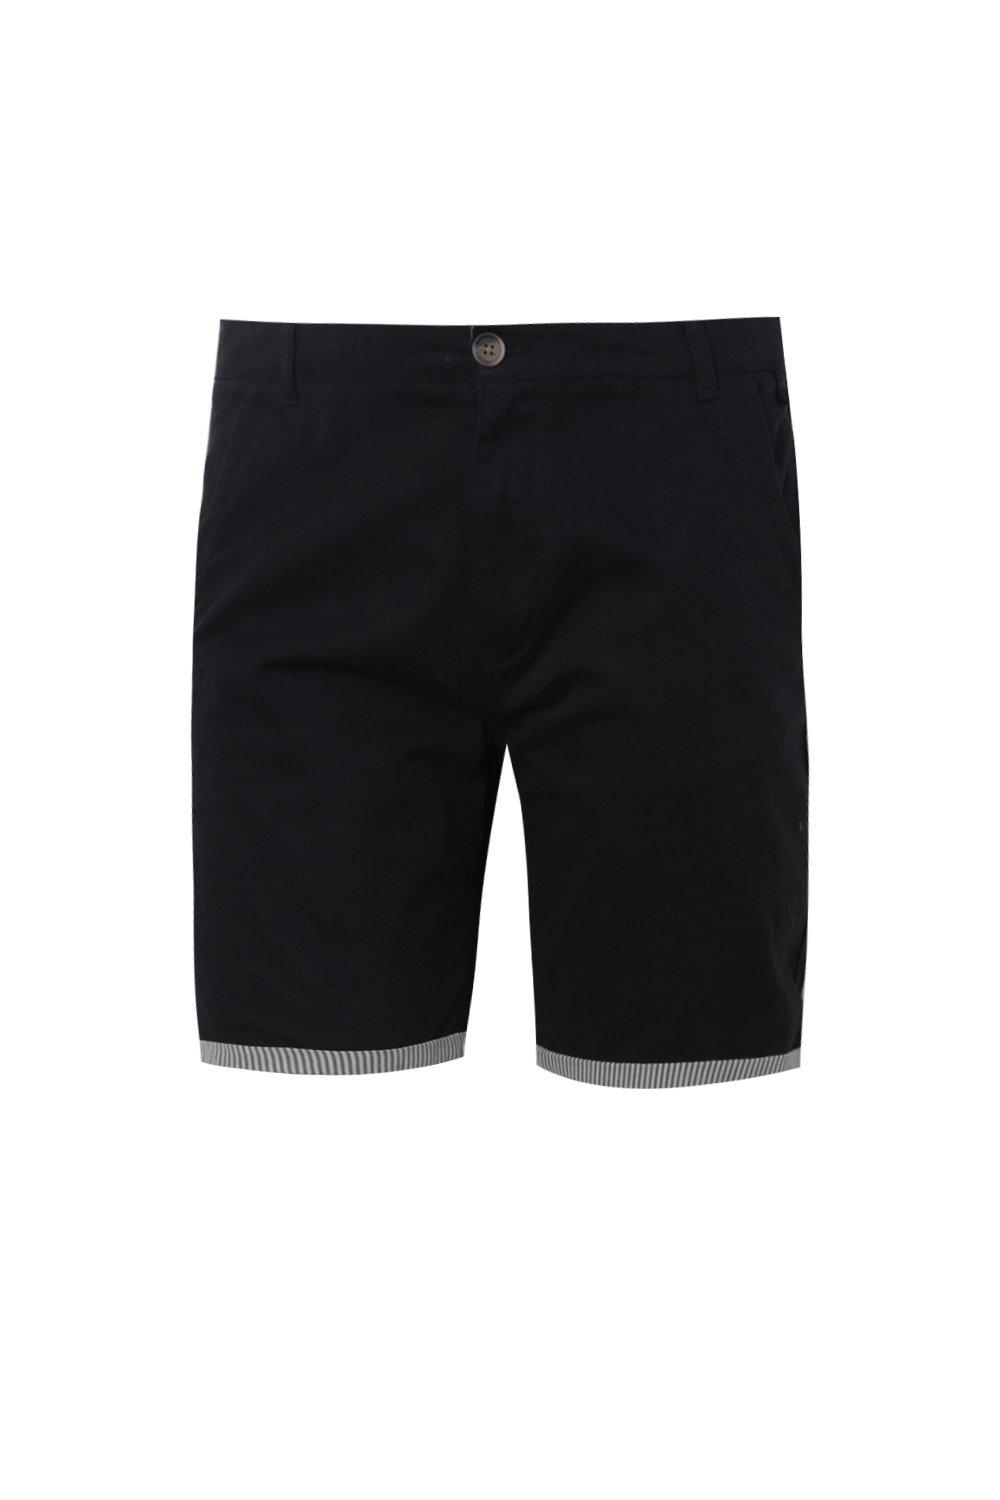 boohooMAN navy Big And Tall Chino Short With Stripe Turn Up